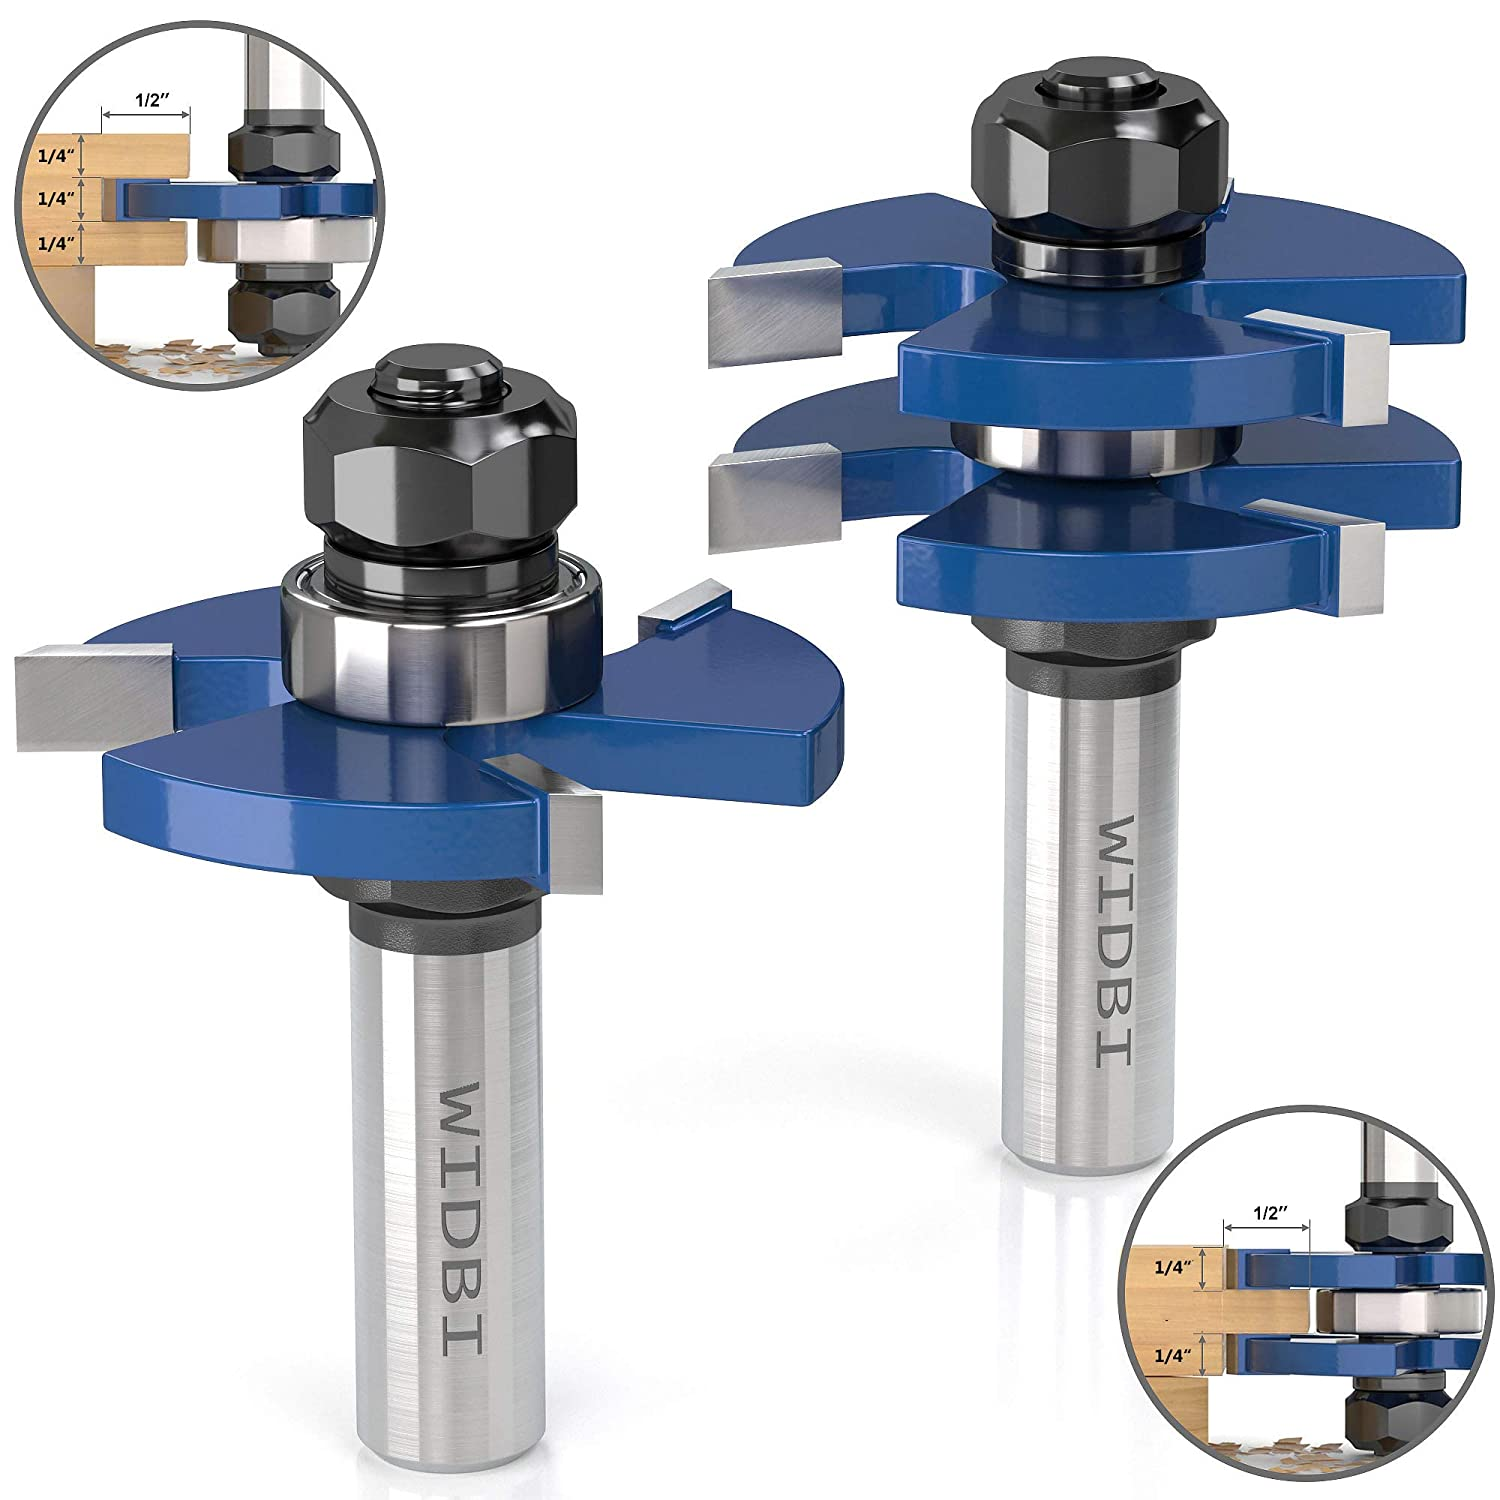 "Premium Tongue and Groove Router Bits (Spacers Included) - 1/2"" Shank 3 Teeth T-Shape Milling Cutter, Hardened K10 Carbide Router Bits for Woodworking (2 pcs) WIDBI"